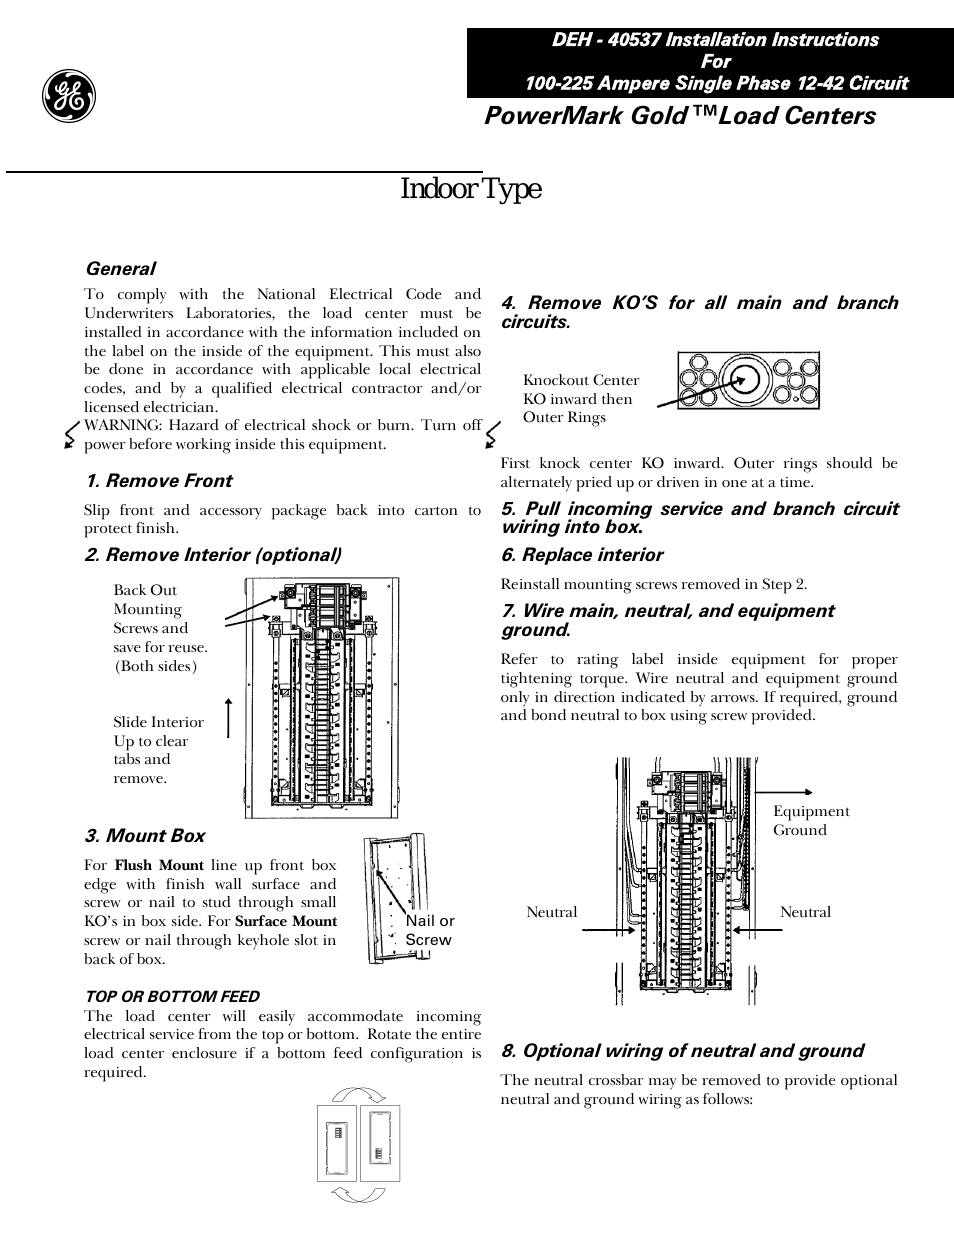 Ge Industrial Solutions Power Mark Gold Load Centers User Manual | 4 - Ge Powermark Gold Load Center Wiring Diagram